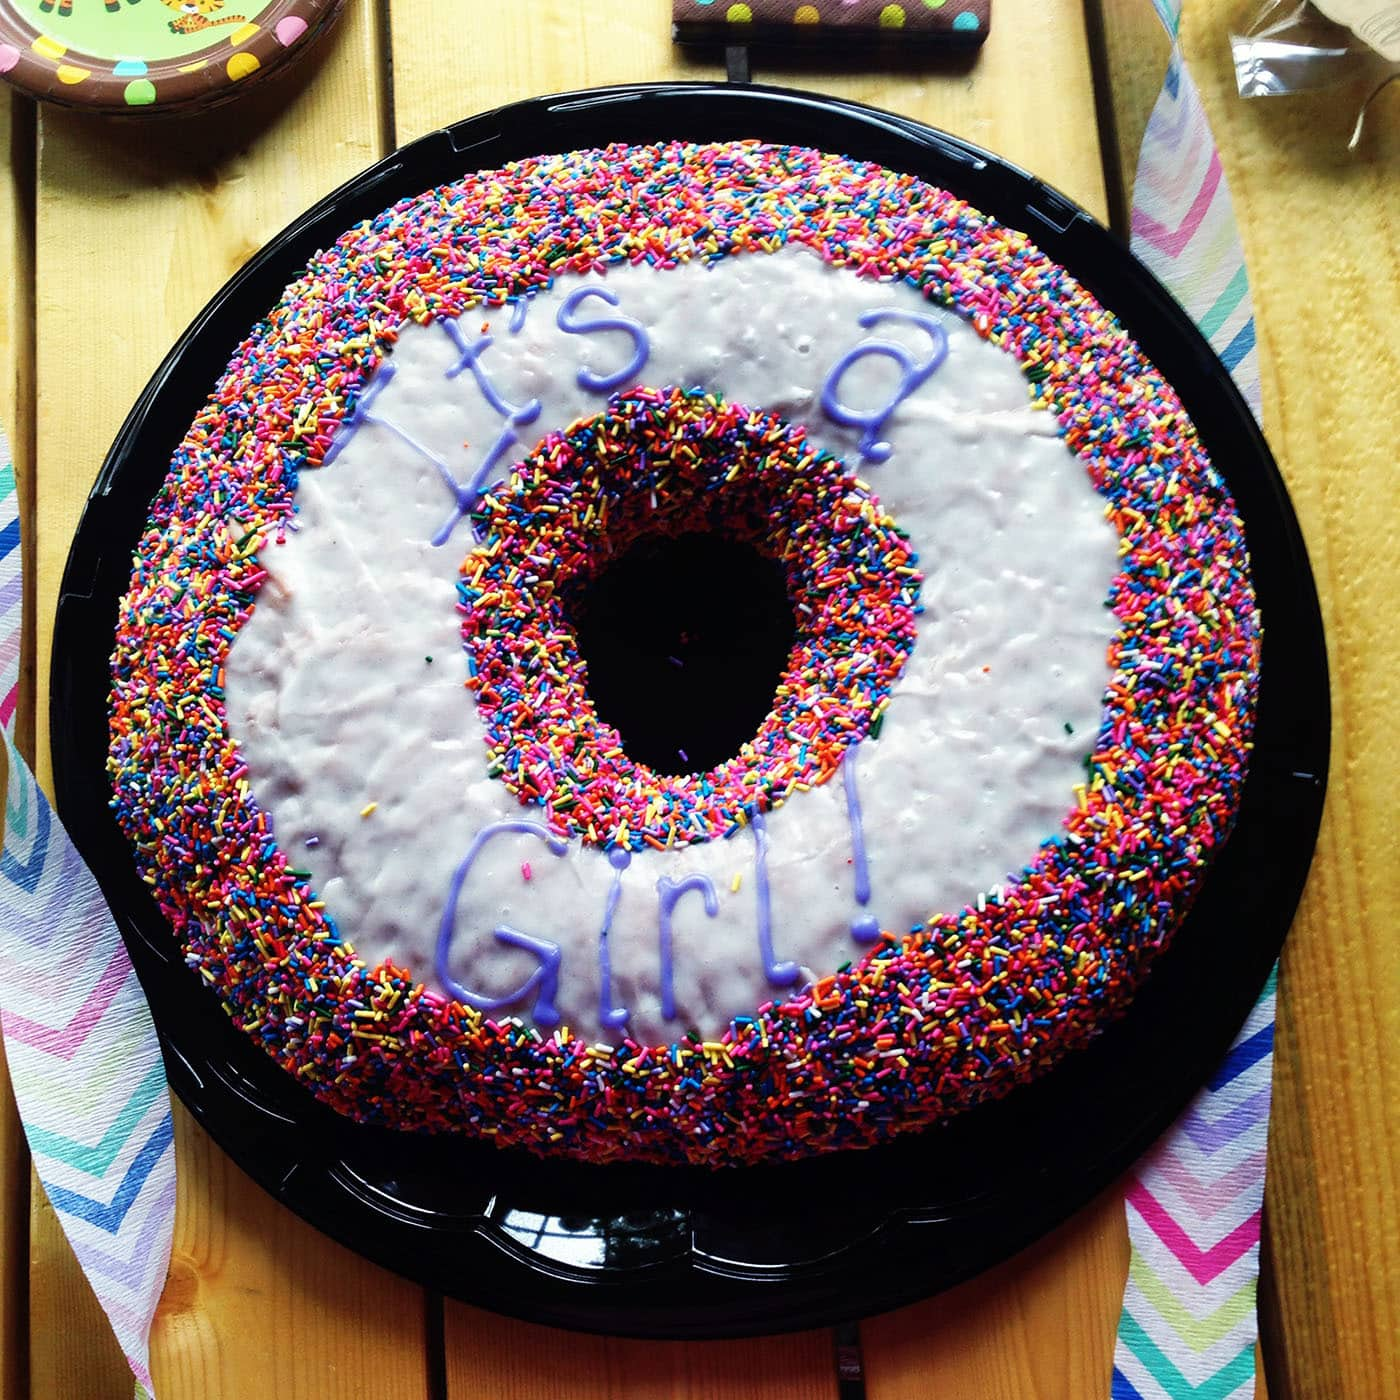 It's a Girl Doughnut Cake from Glazed and Infused